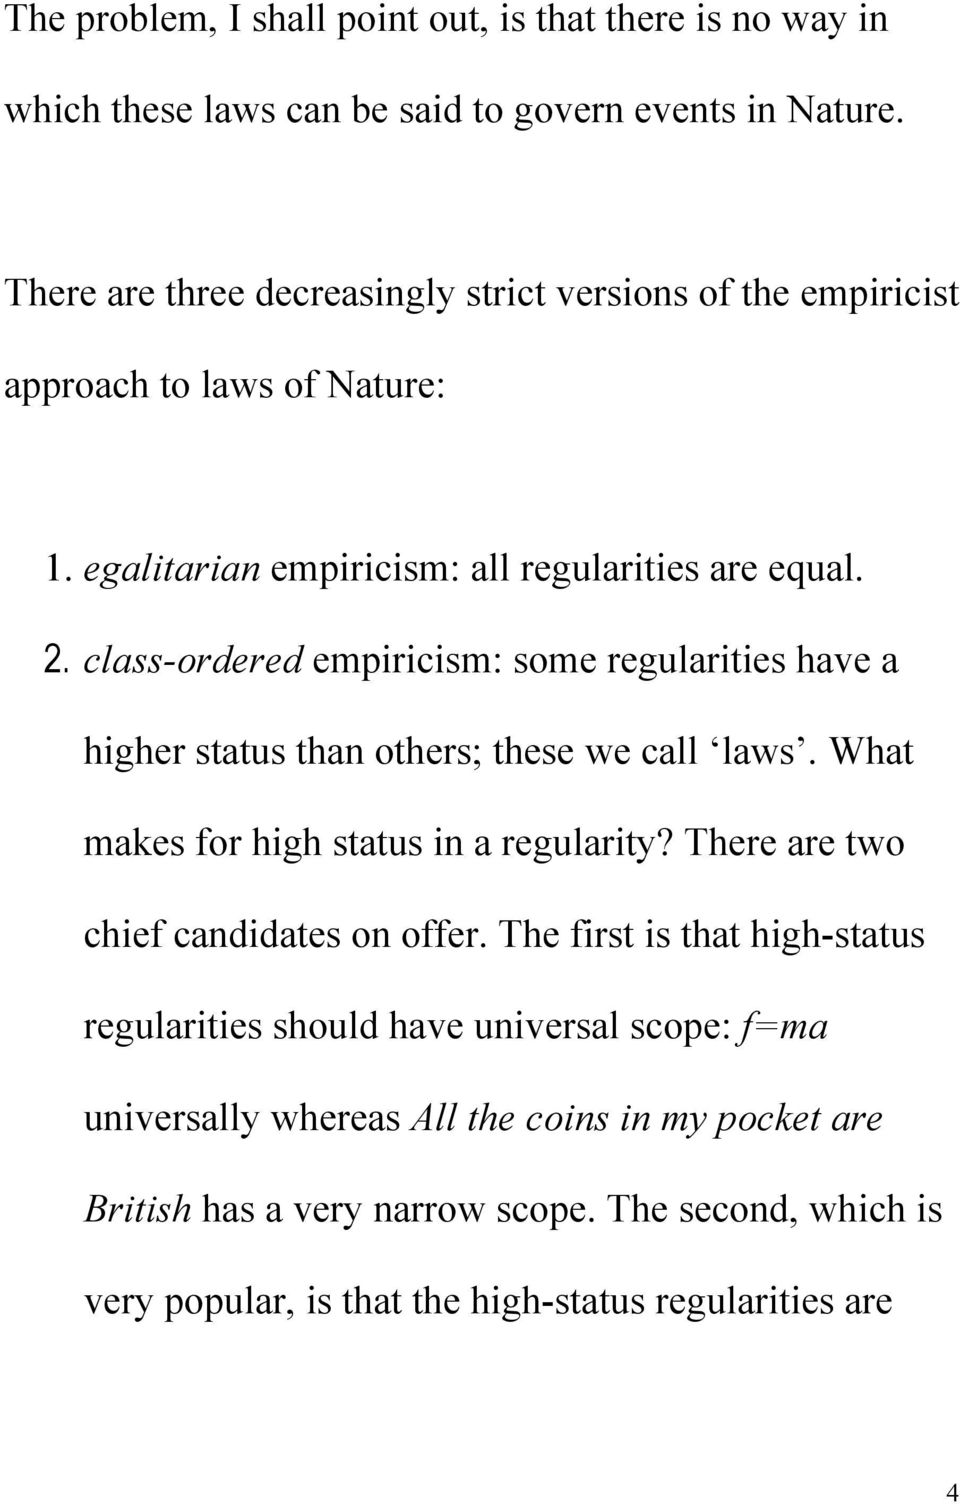 class-ordered empiricism: some regularities have a higher status than others; these we call laws. What makes for high status in a regularity?